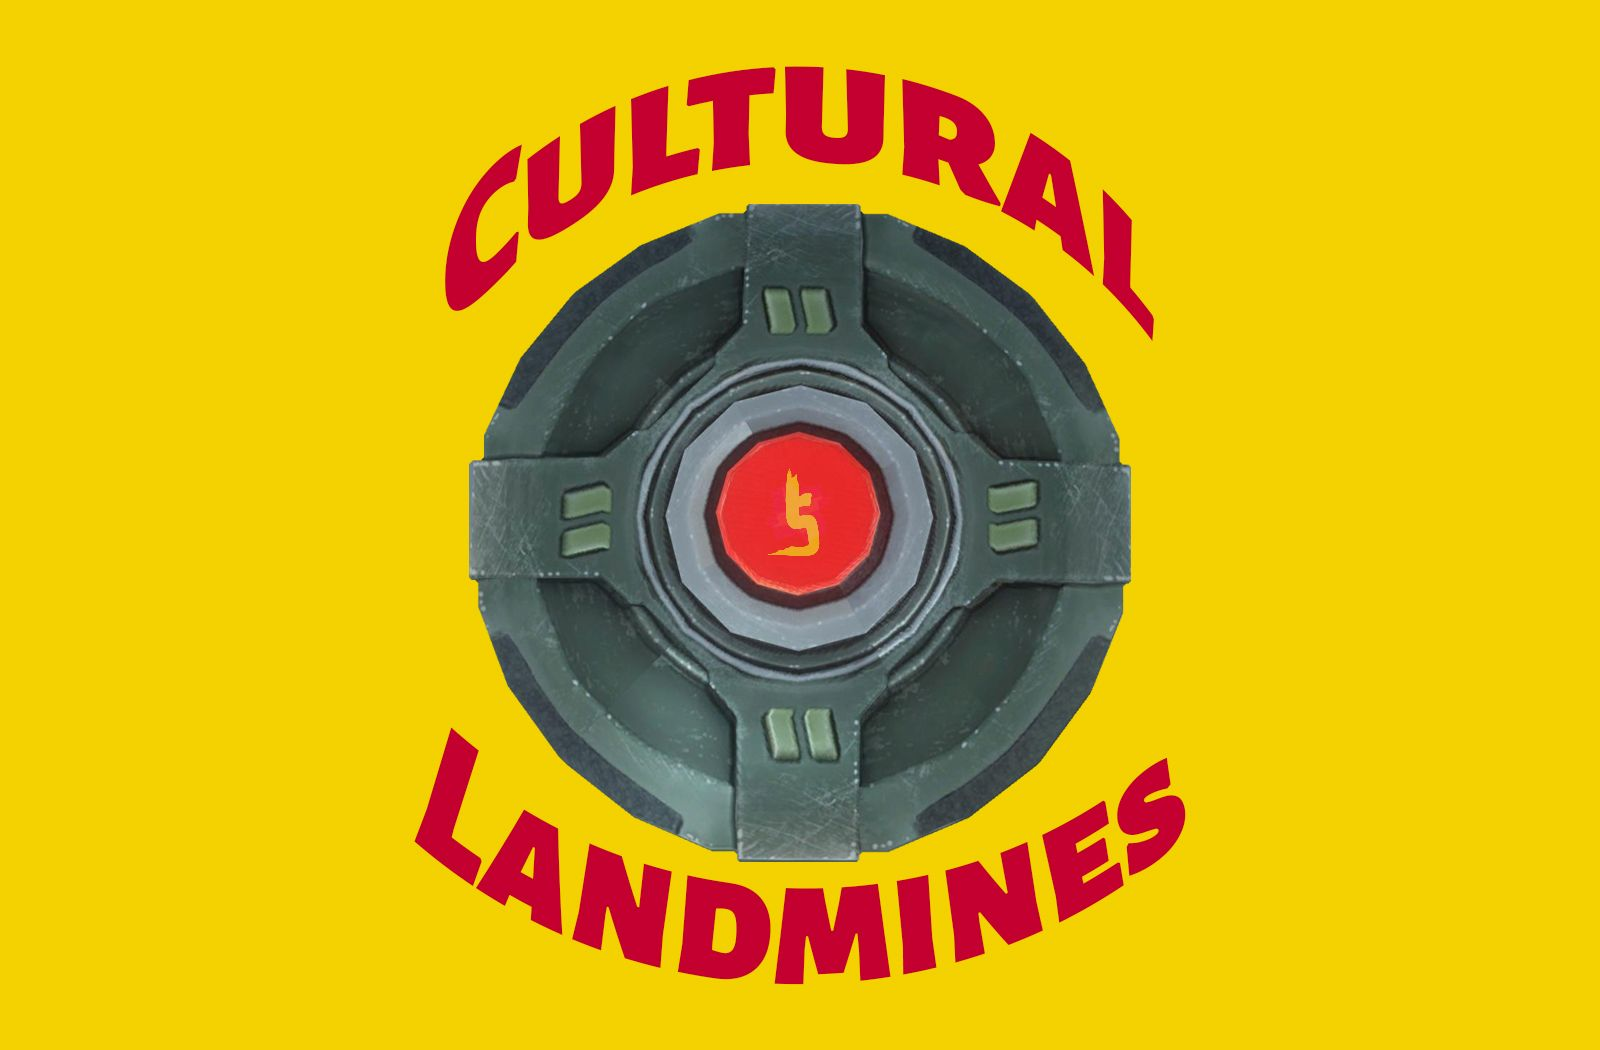 Cultural Landmines in Asia - How to Defuse them BEFORE Losing a Limb